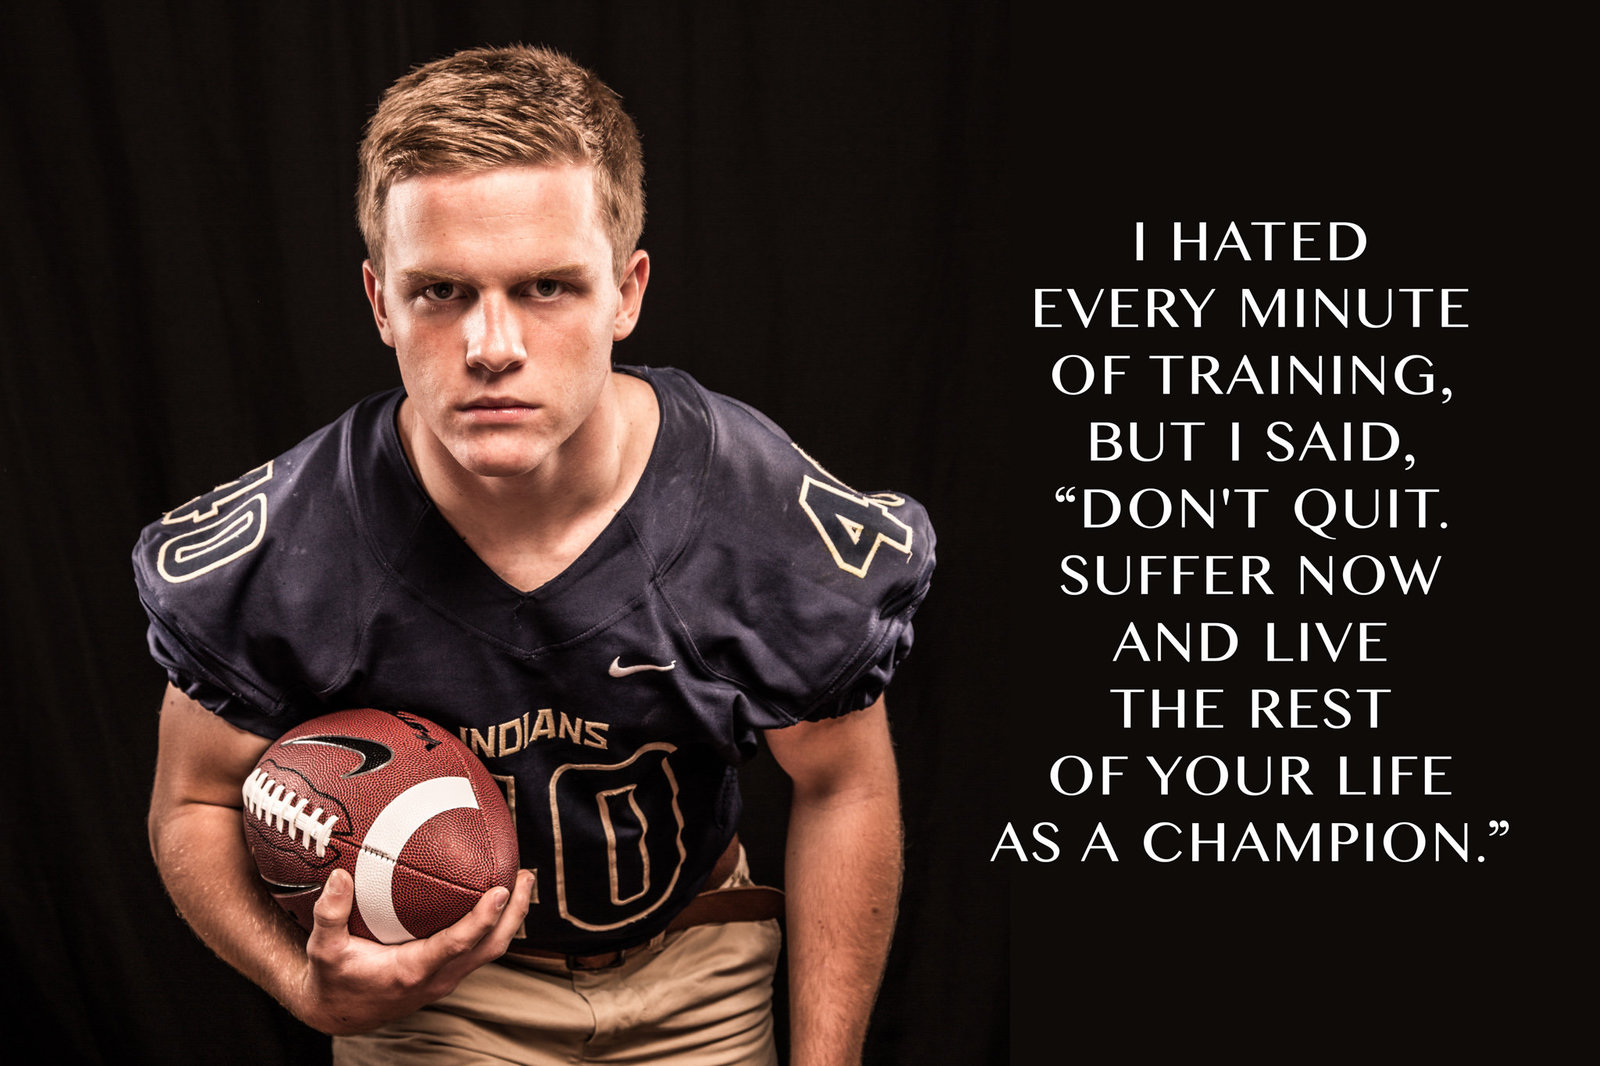 Football quote v2